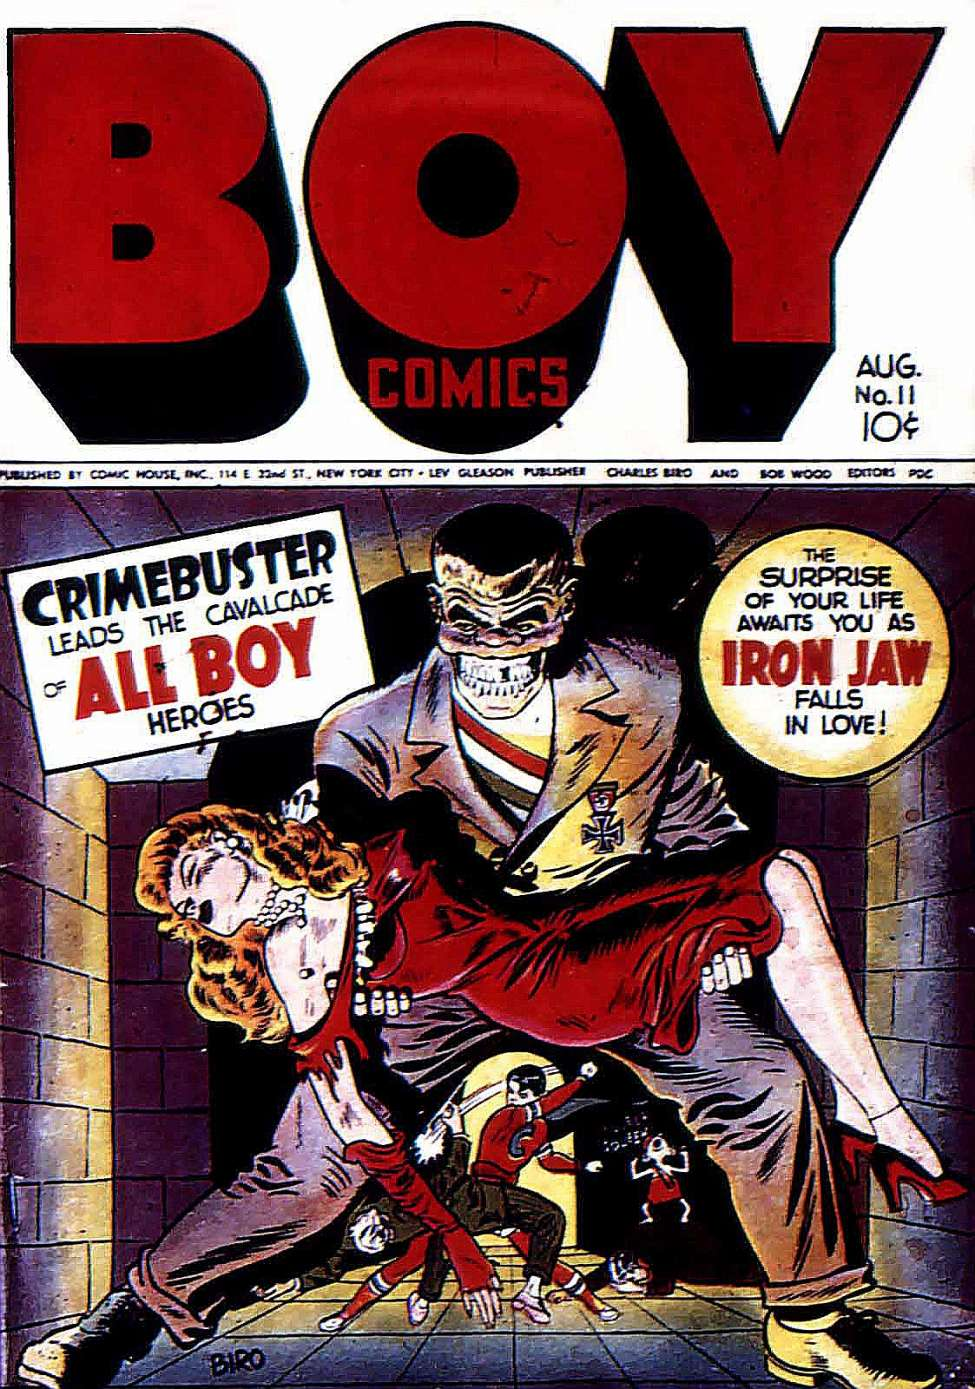 Comic Book Cover For Boy Comics #11